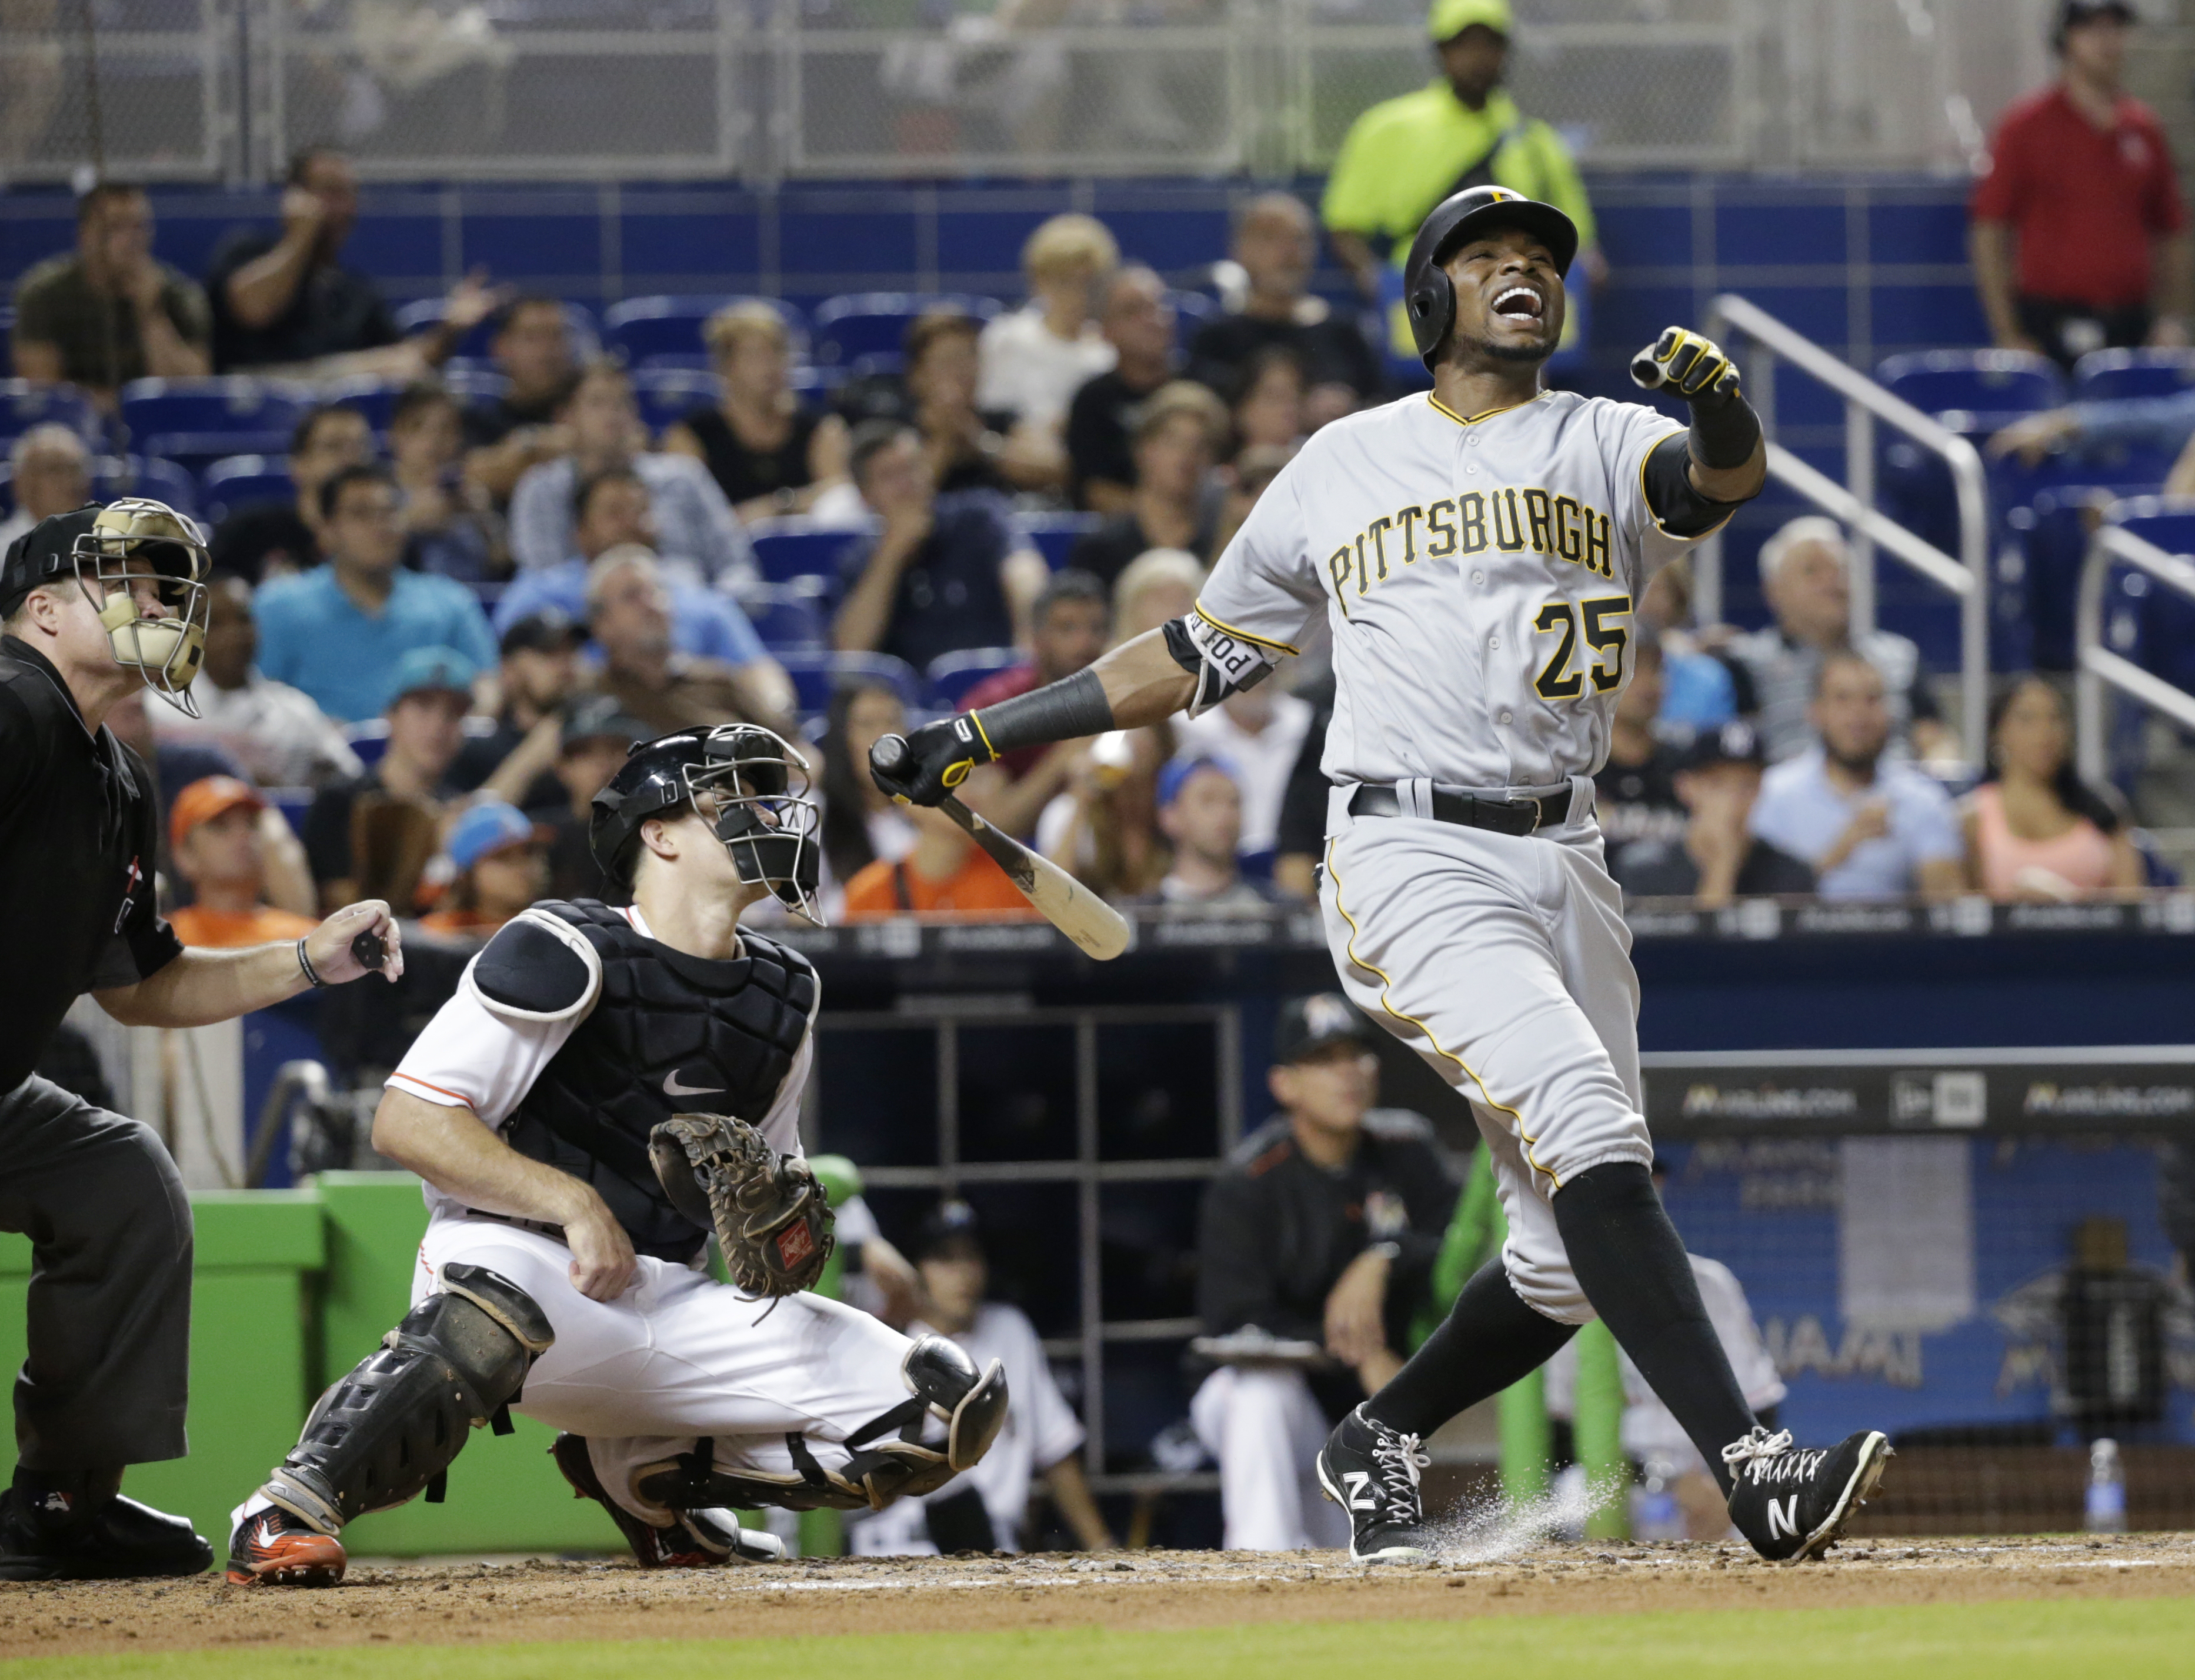 Pittsburgh Pirates' Gregory Polanco reacts after hitting a pop-up fly ball to Miami Marlins right fielder Ichiro Suzuki during the fourth inning of a baseball game, Tuesday, May 31, 2016, in Miami. (AP Photo/Wilfredo Lee)